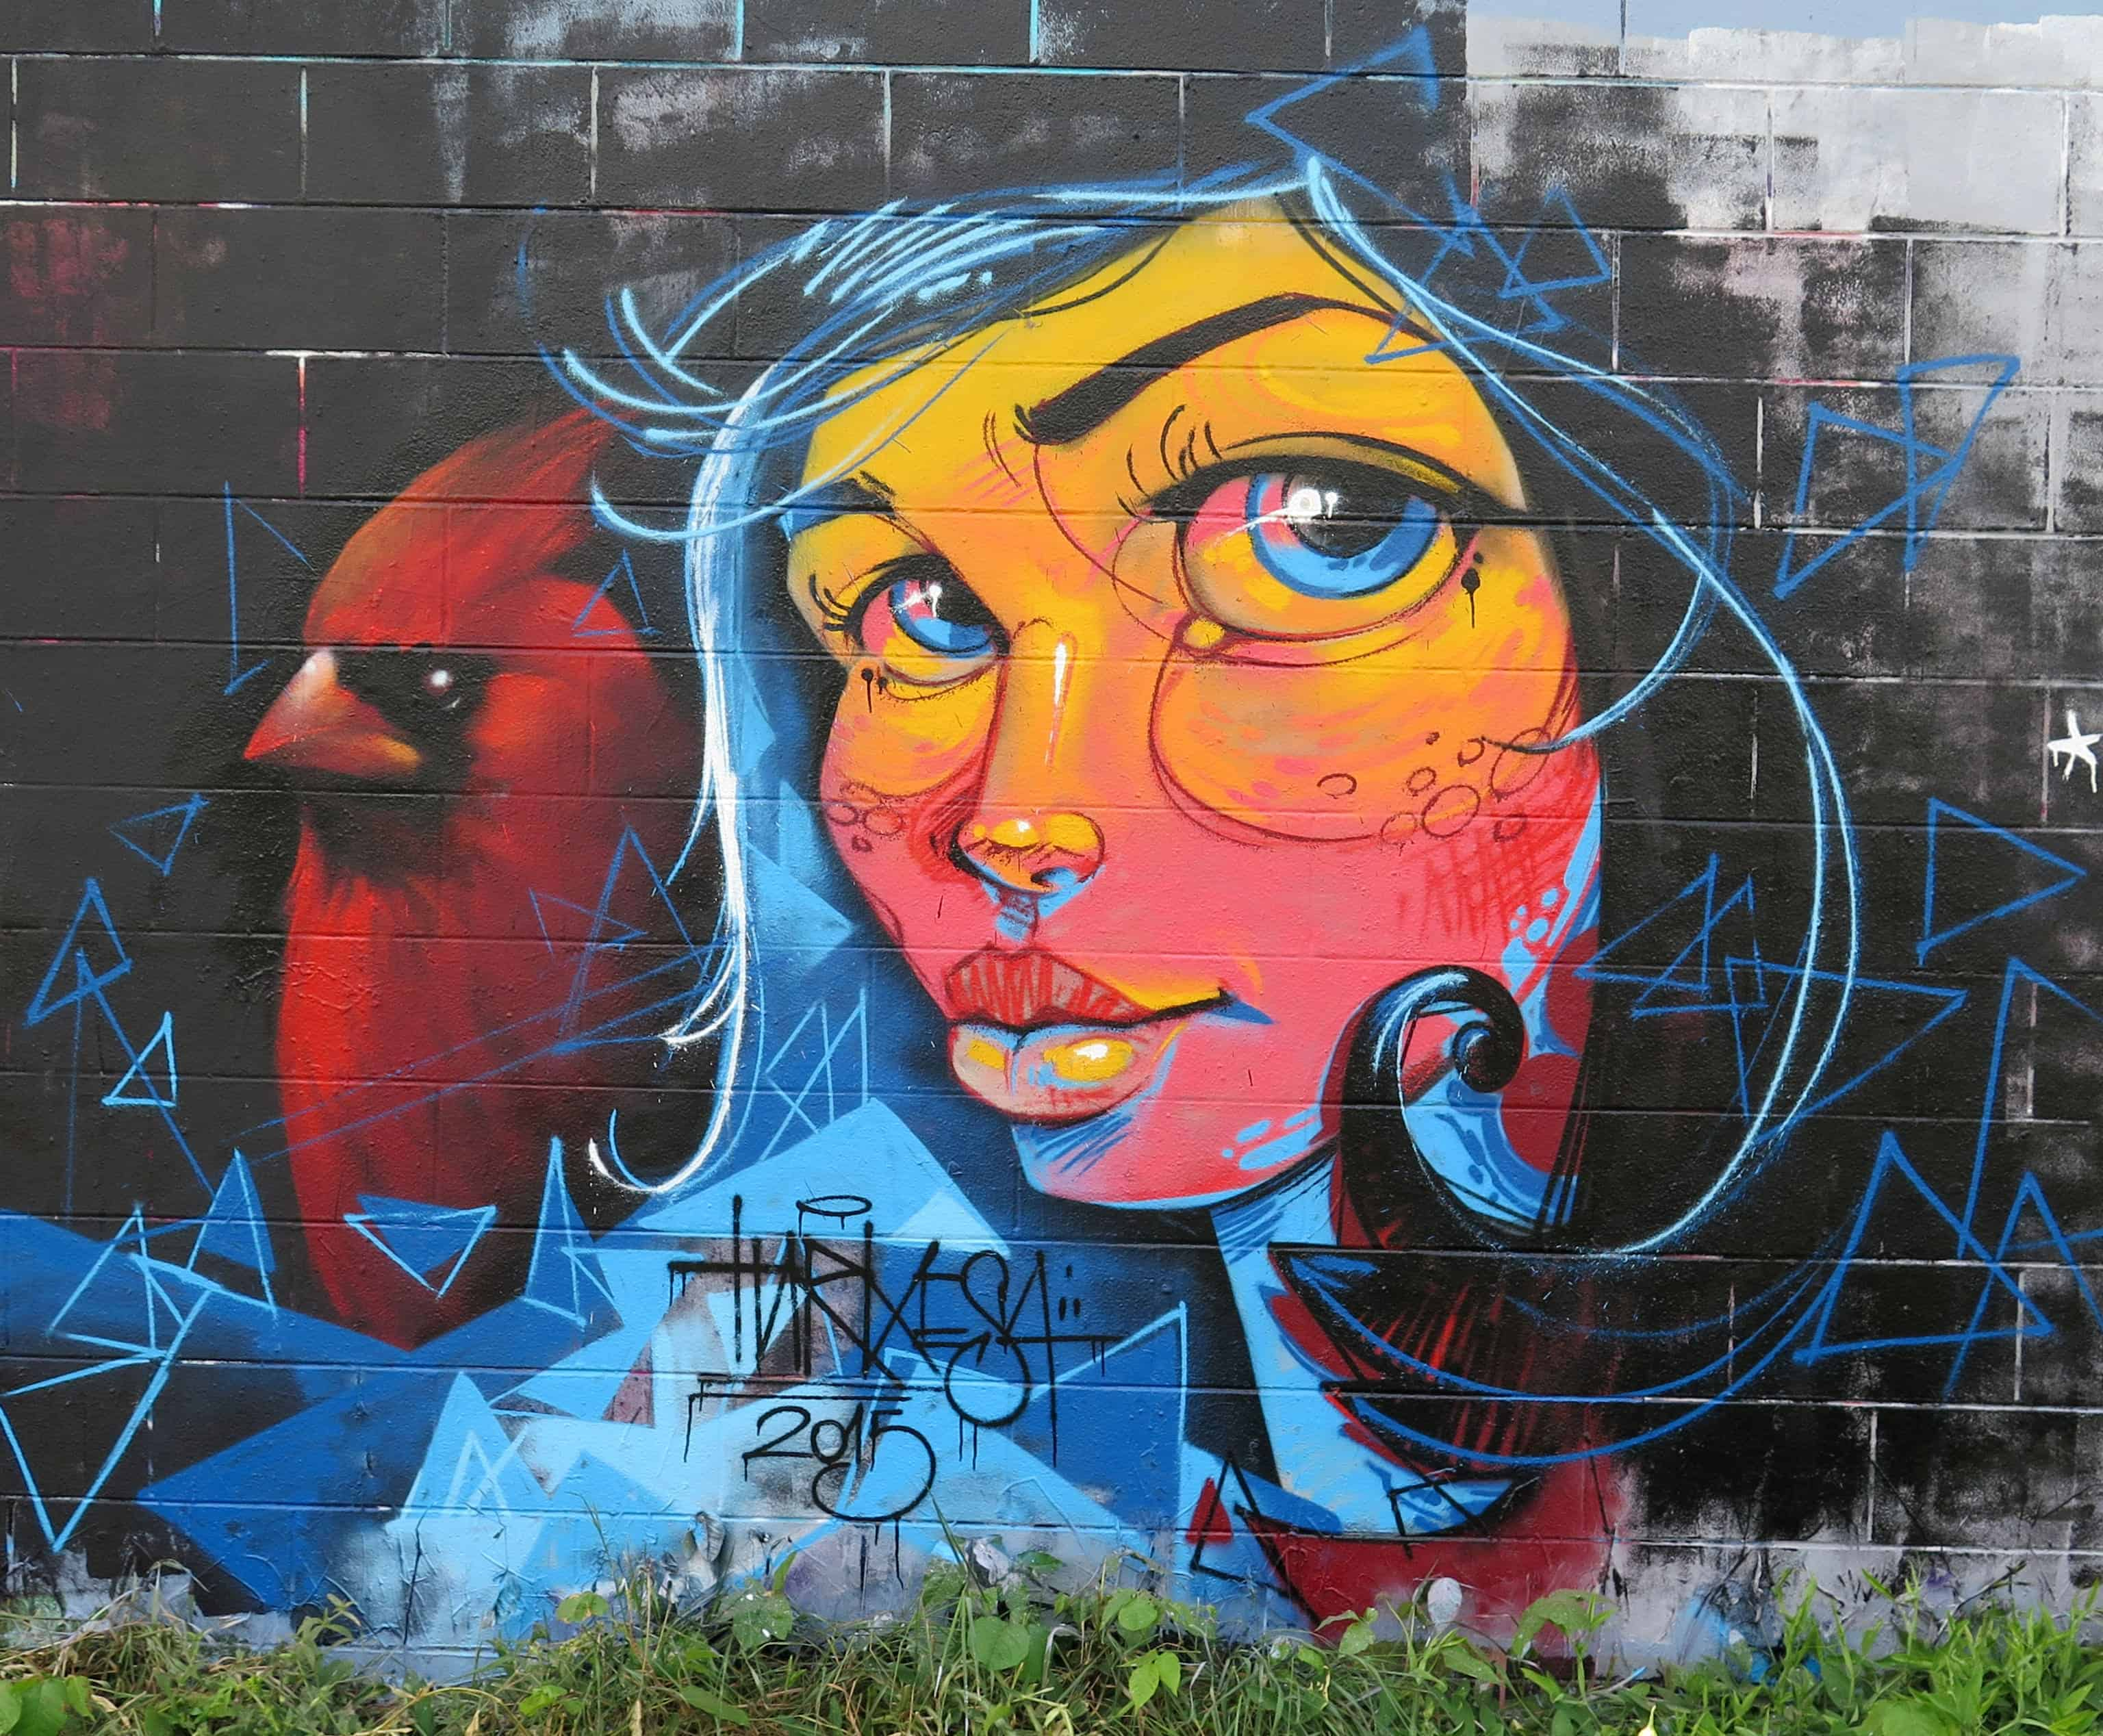 graffiti-dayton-face